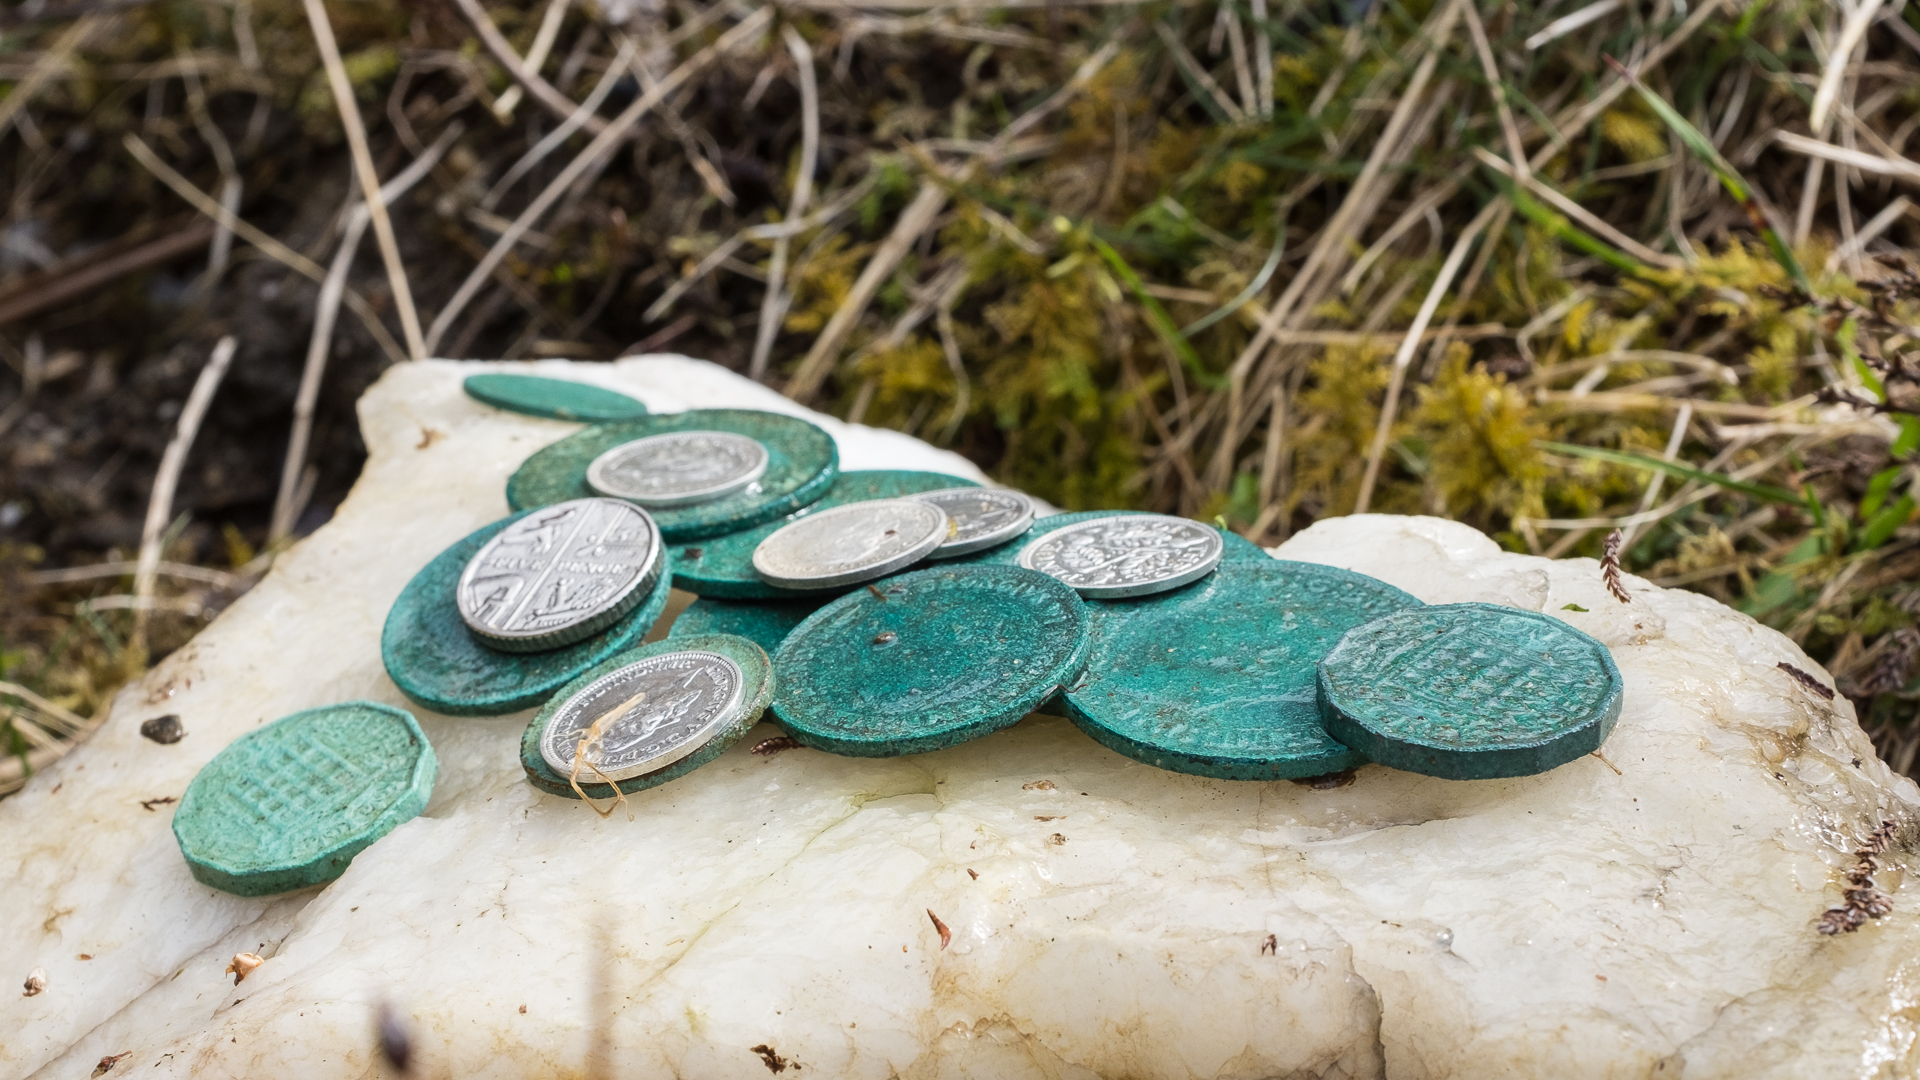 Shiehallion Well. Image showing antique coins temporarily removed from the Schiehallion for The Well at the World's End. 2016 © Alexander and Susan Maris